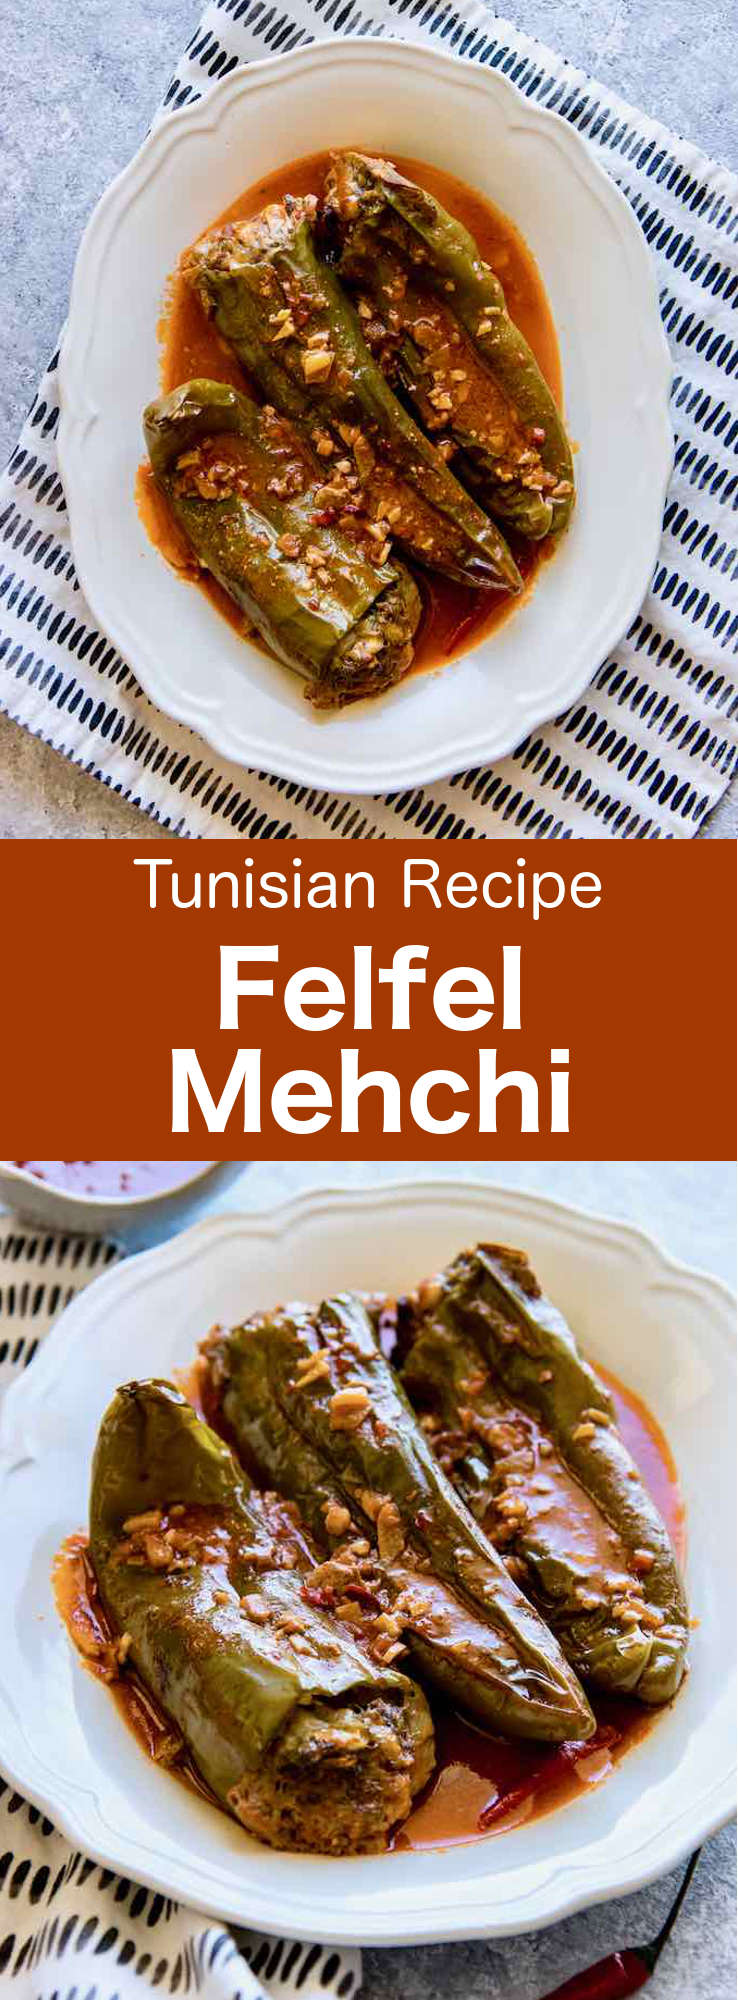 Felfel mehchi, a stuffed pepper dish from Tunisia made with bull horn bell peppers stuffed with ground beef, cheese, vegetables, and spices, and topped with a spicy red sauce. #Tunisia #Tunisian #TunisianCuisine #TunisianRecipe #NorthAfricanCuisine #NorthAfricanRecipe #NorthAfrica #Maghreb #MaghrebCuisine #WorldCuisine #196flavors